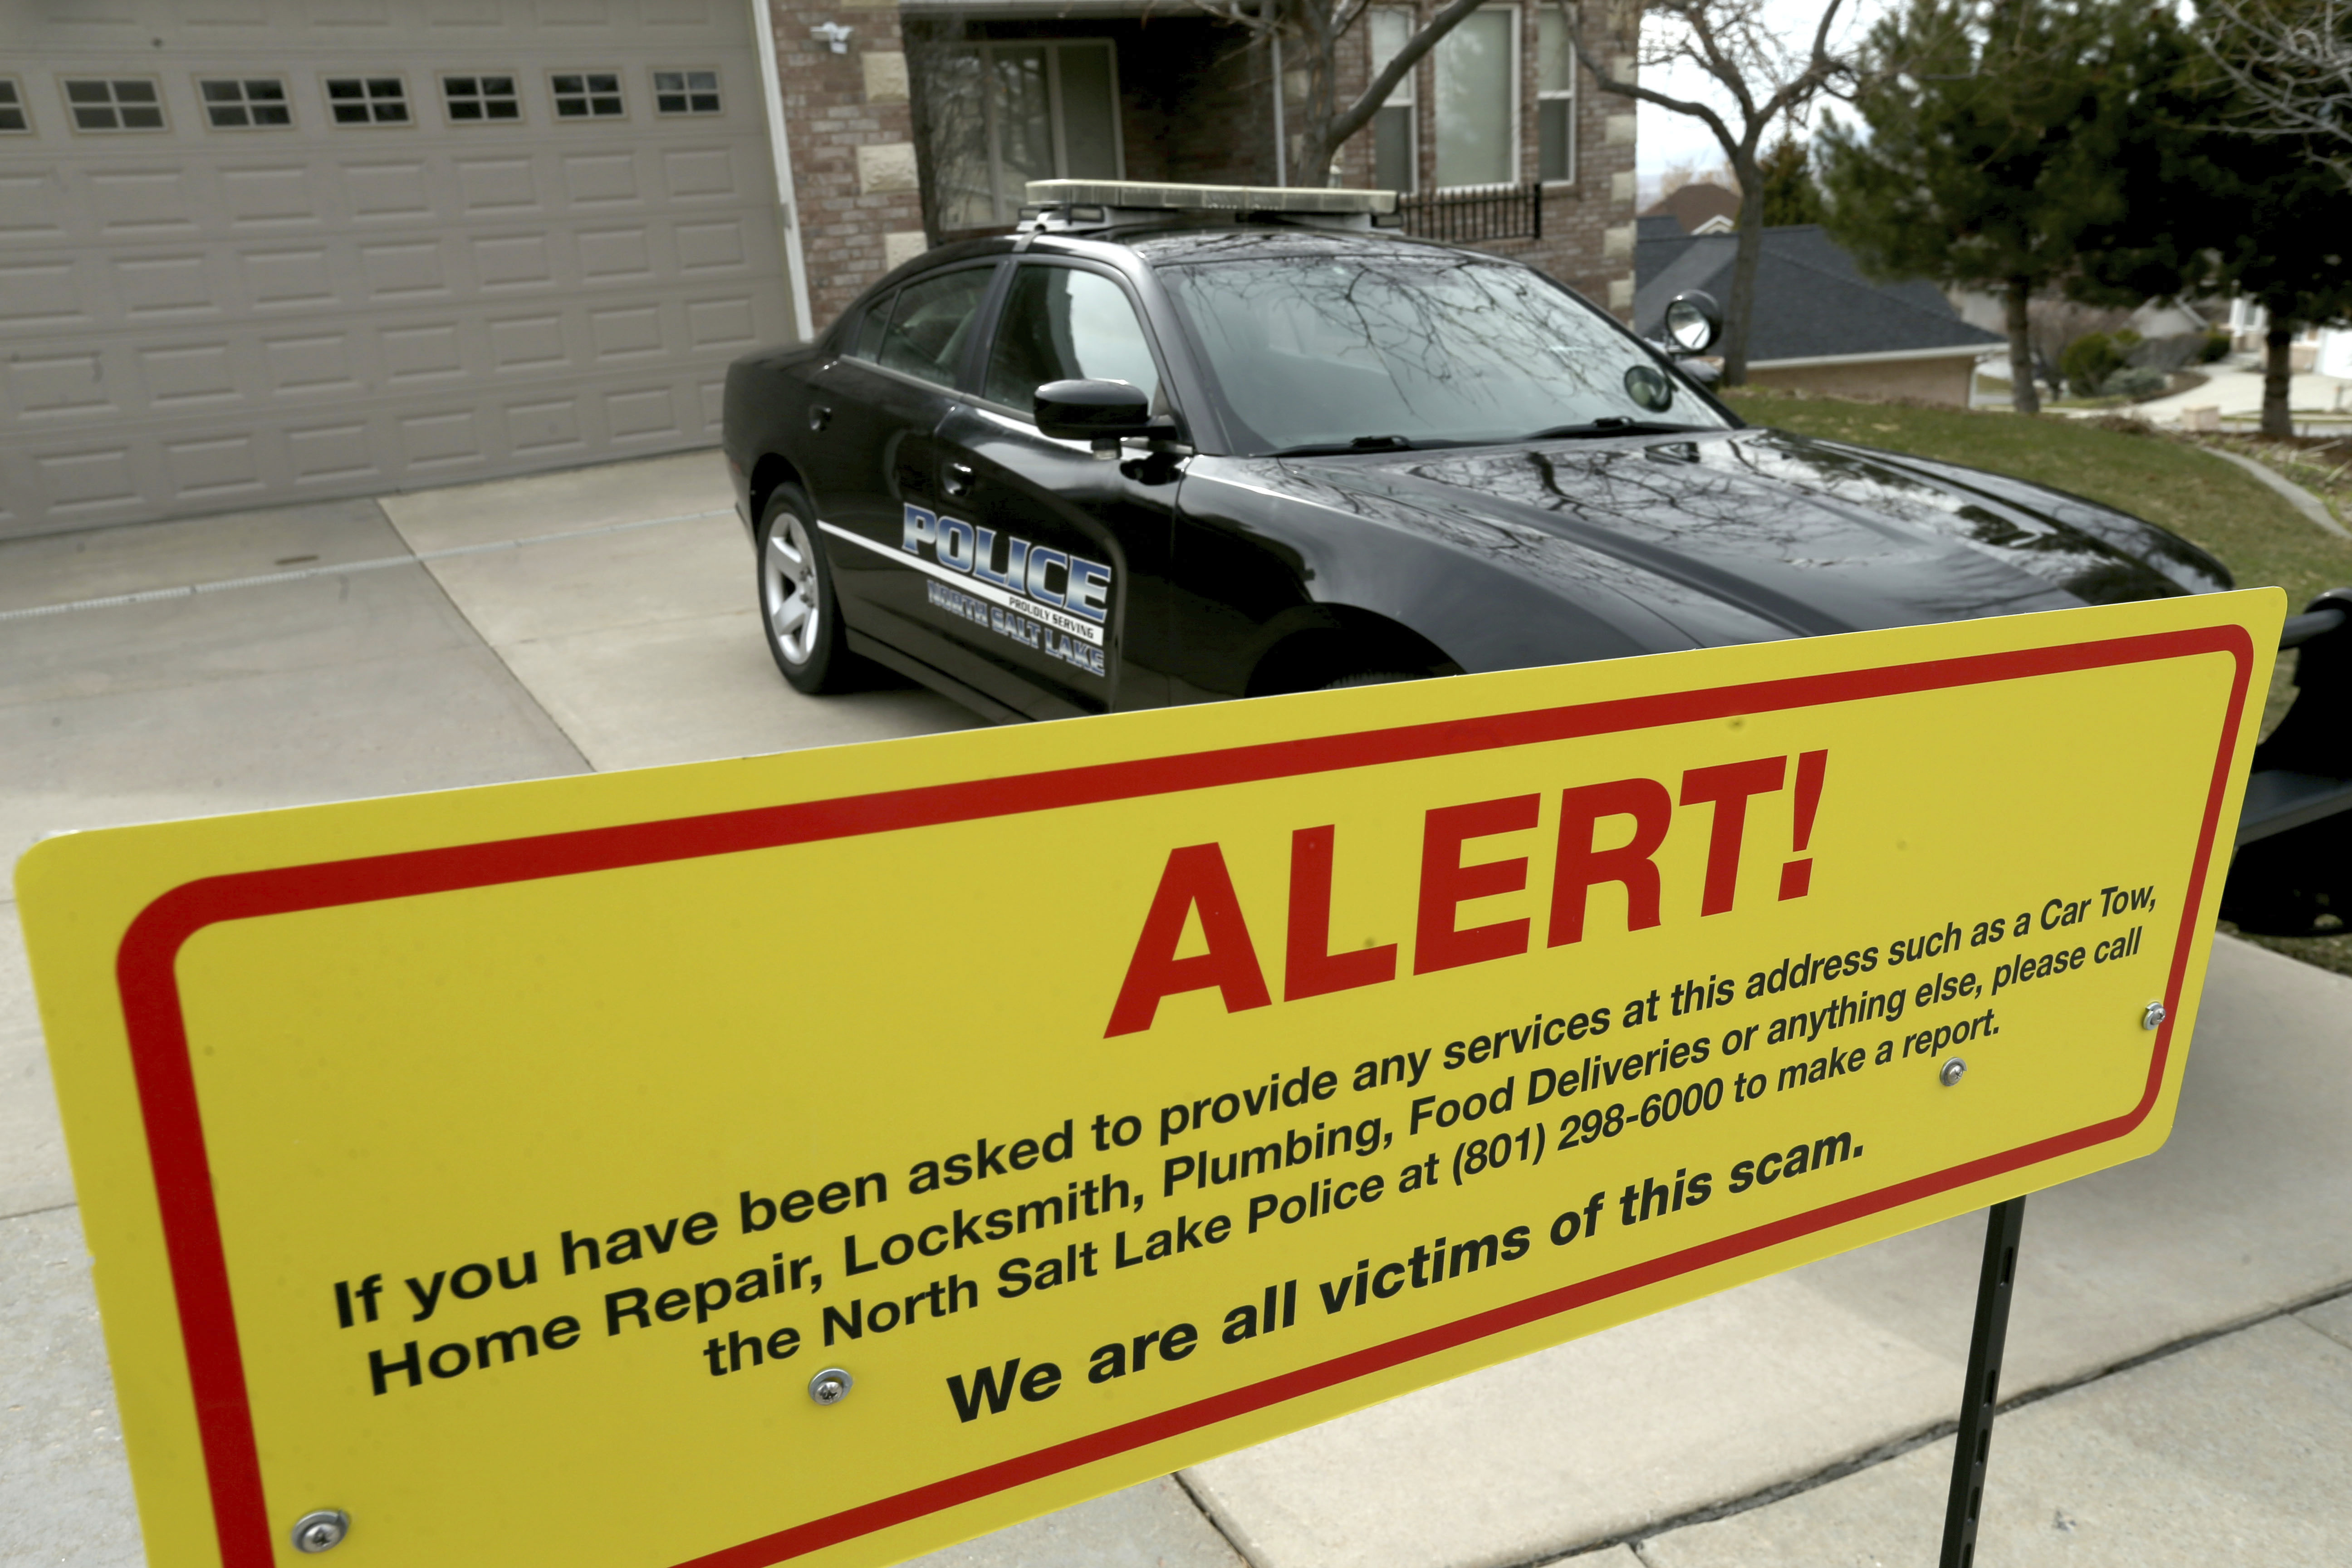 This photo shows a warning sign and a police officer's vehicle at Walt Gilmore's home in North Salt Lake, Utah on March 21, 2019.